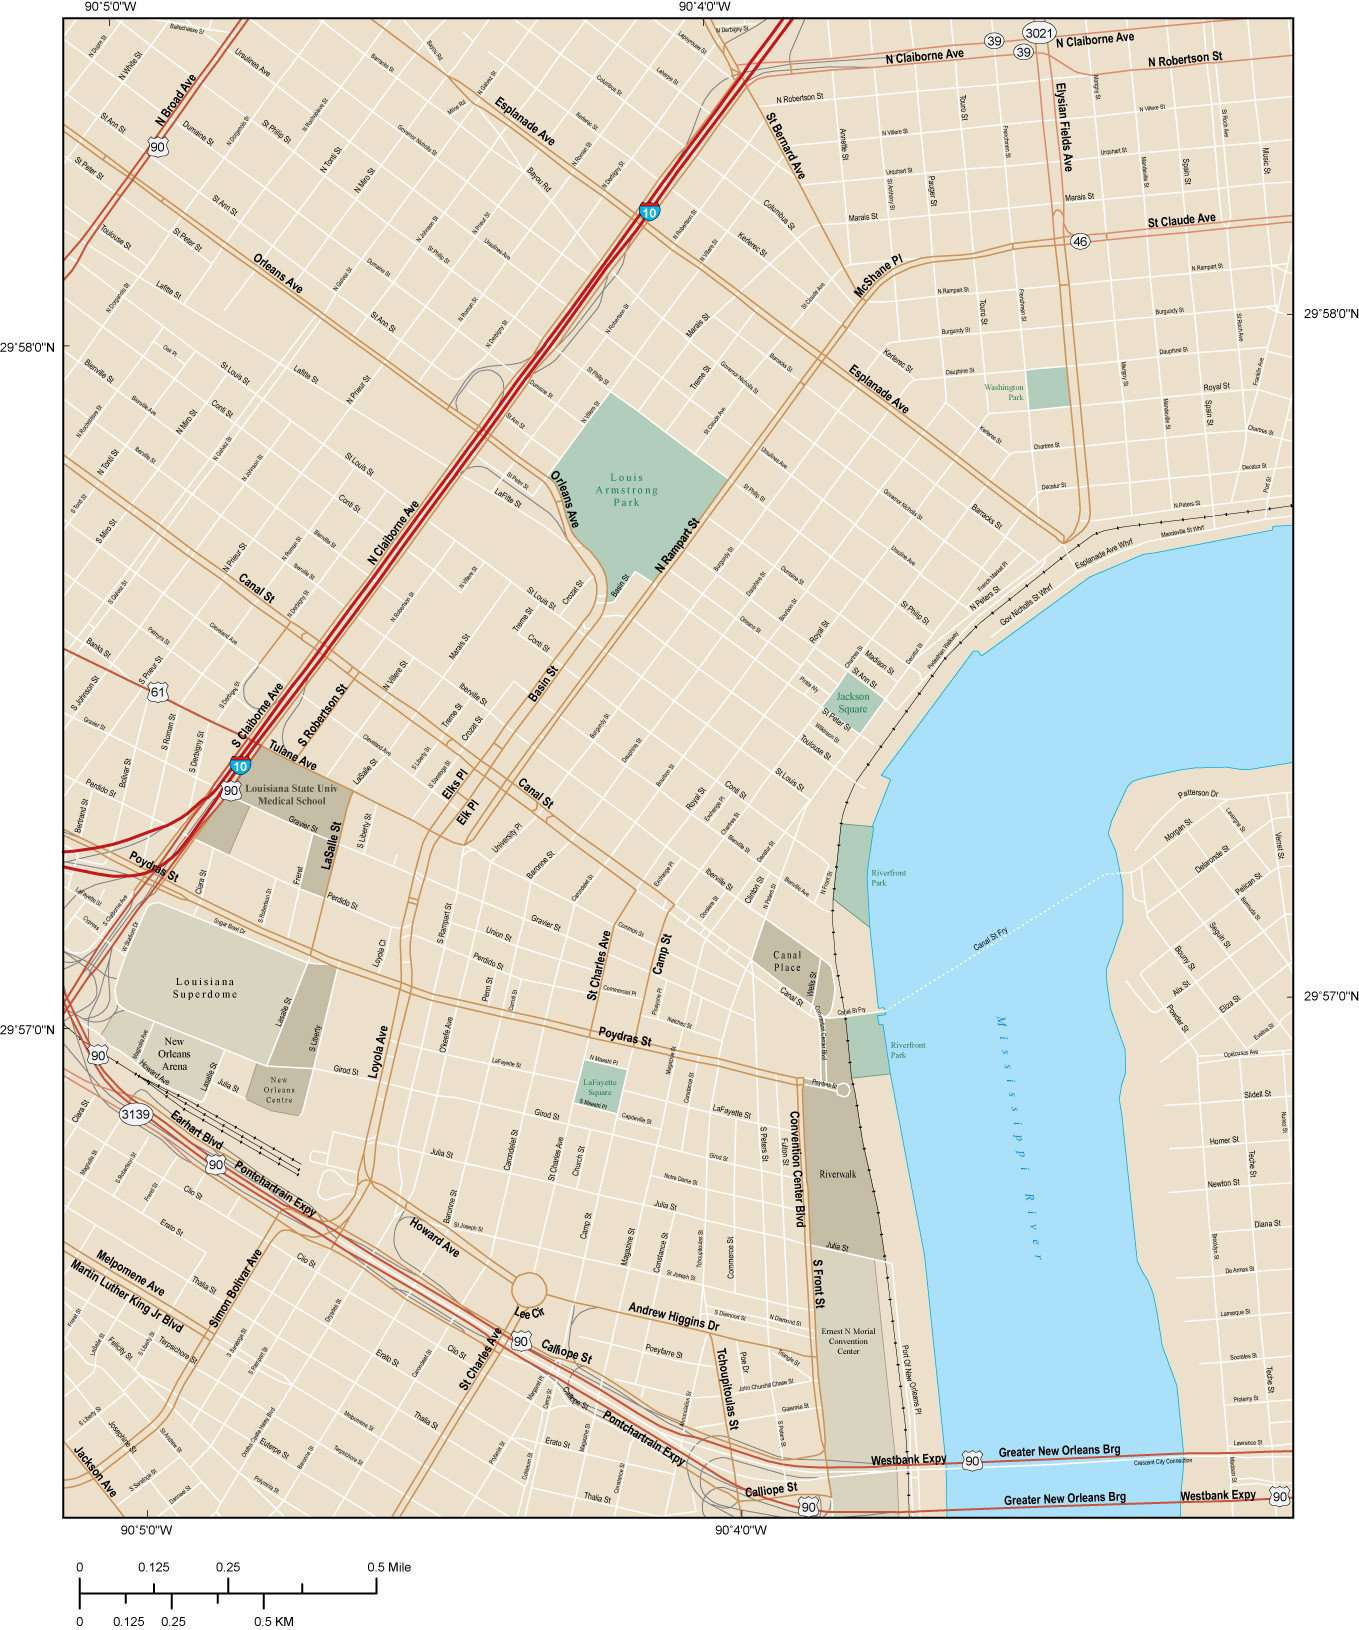 New Orleans Map With Local Streets In Adobe Illustrator Vector